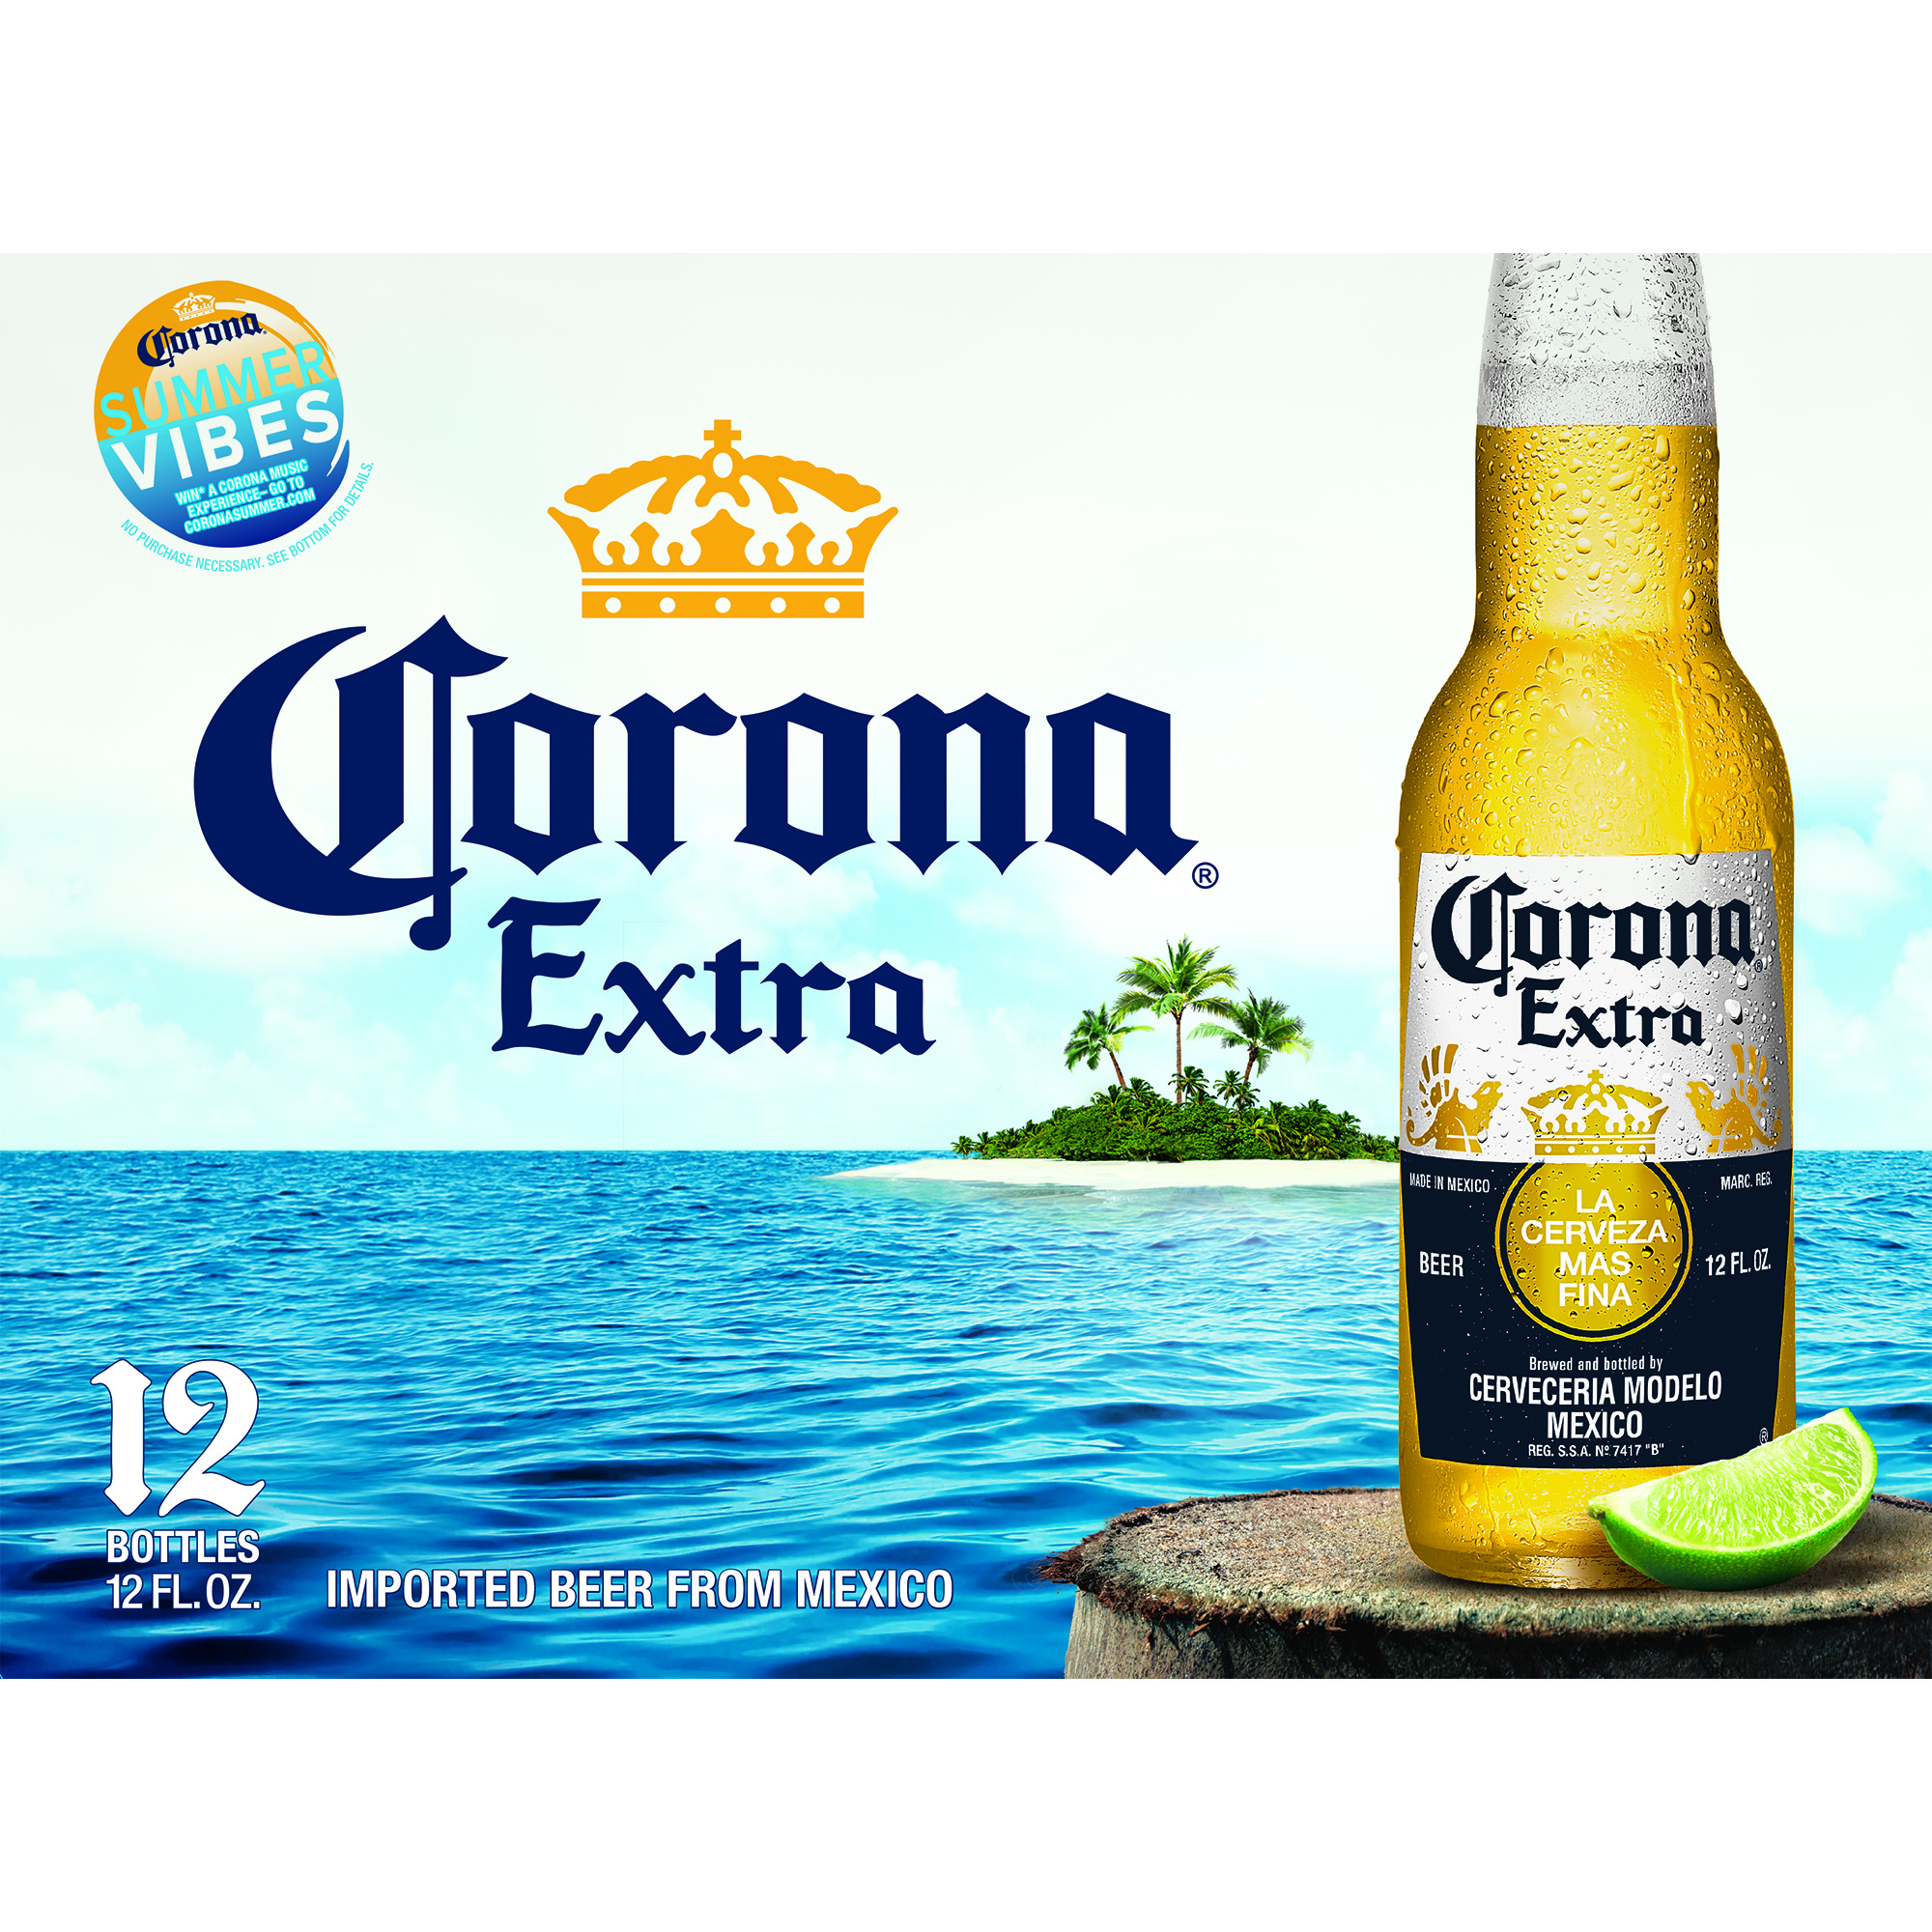 corona beer competitive strategies Brewed in mexico and exported to all over the world  and world wide corona is the number one imported premium beer in australia launched in 2009 as long as the two brands were owned by different companies, there was a more intense market share battle both beers sell the summer and beach.